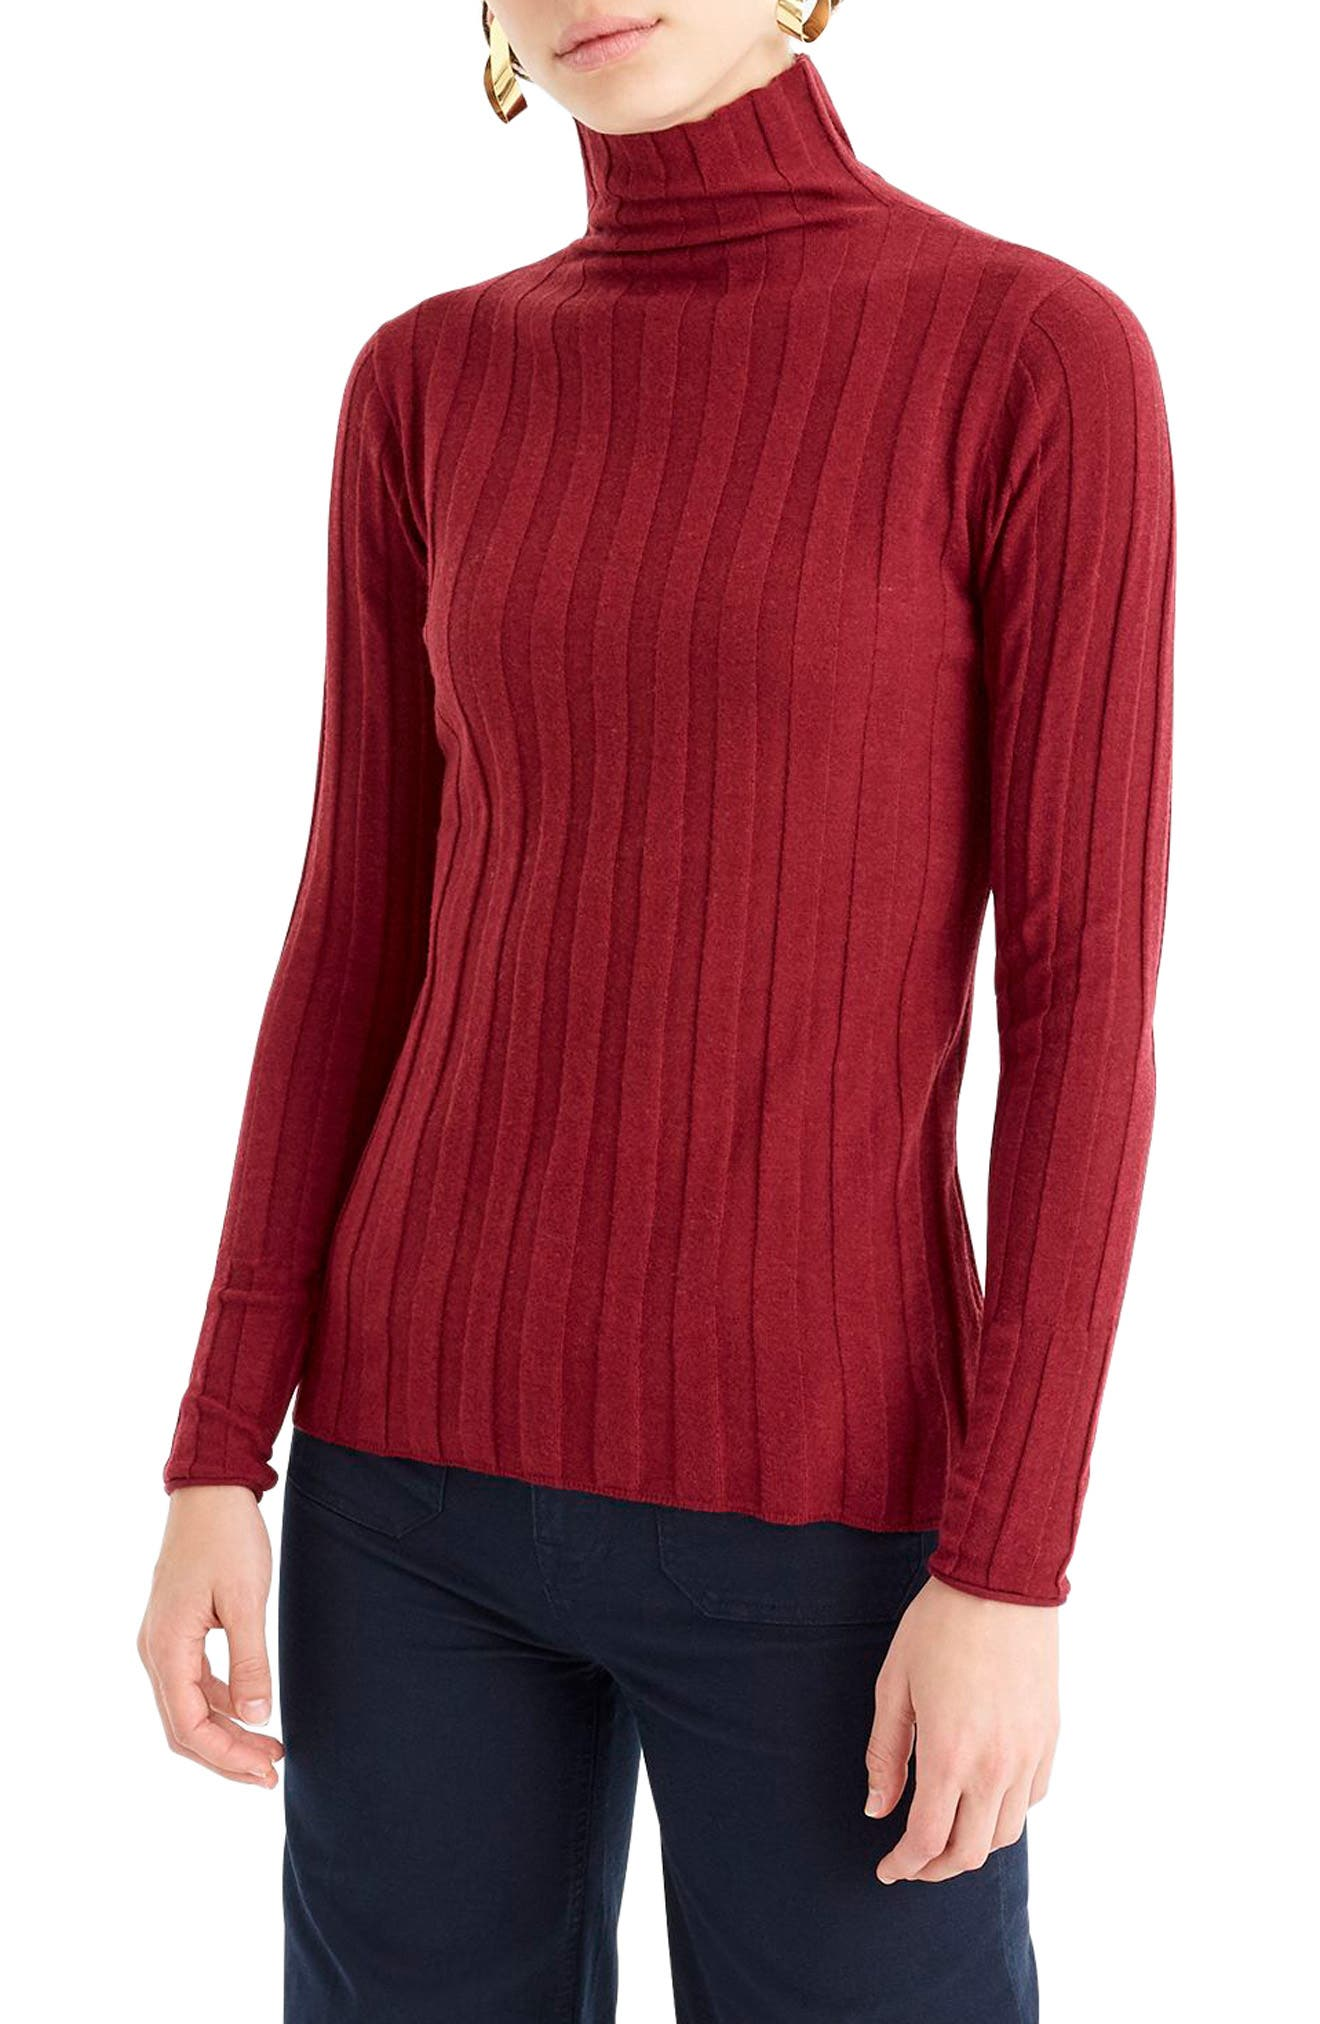 365 Stretch Ribbed Turtleneck Sweater,                         Main,                         color, 930